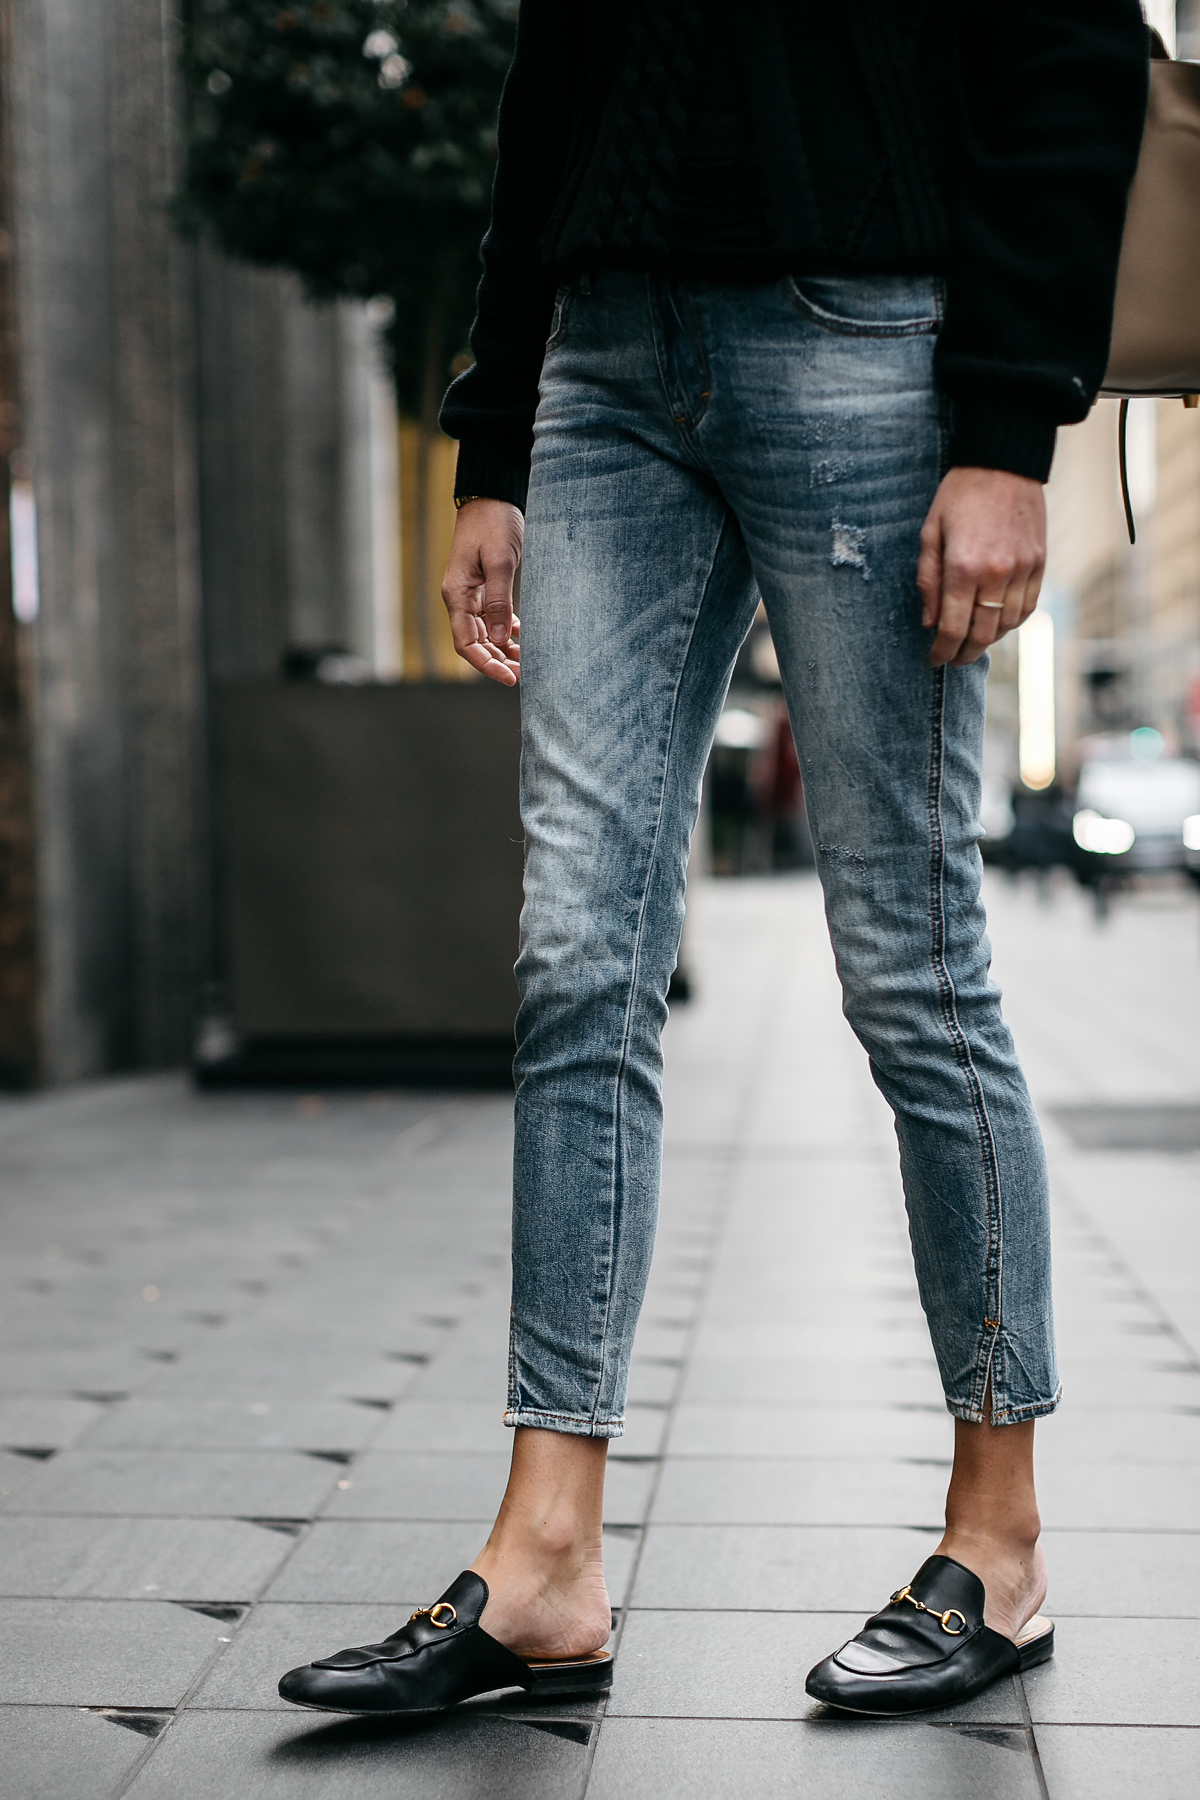 Woman Wearing Denim Split Hem Skinny Jeans Gucci Loafer Mules Fashion Jackson Dallas Blogger Fashion Blogger Street Style